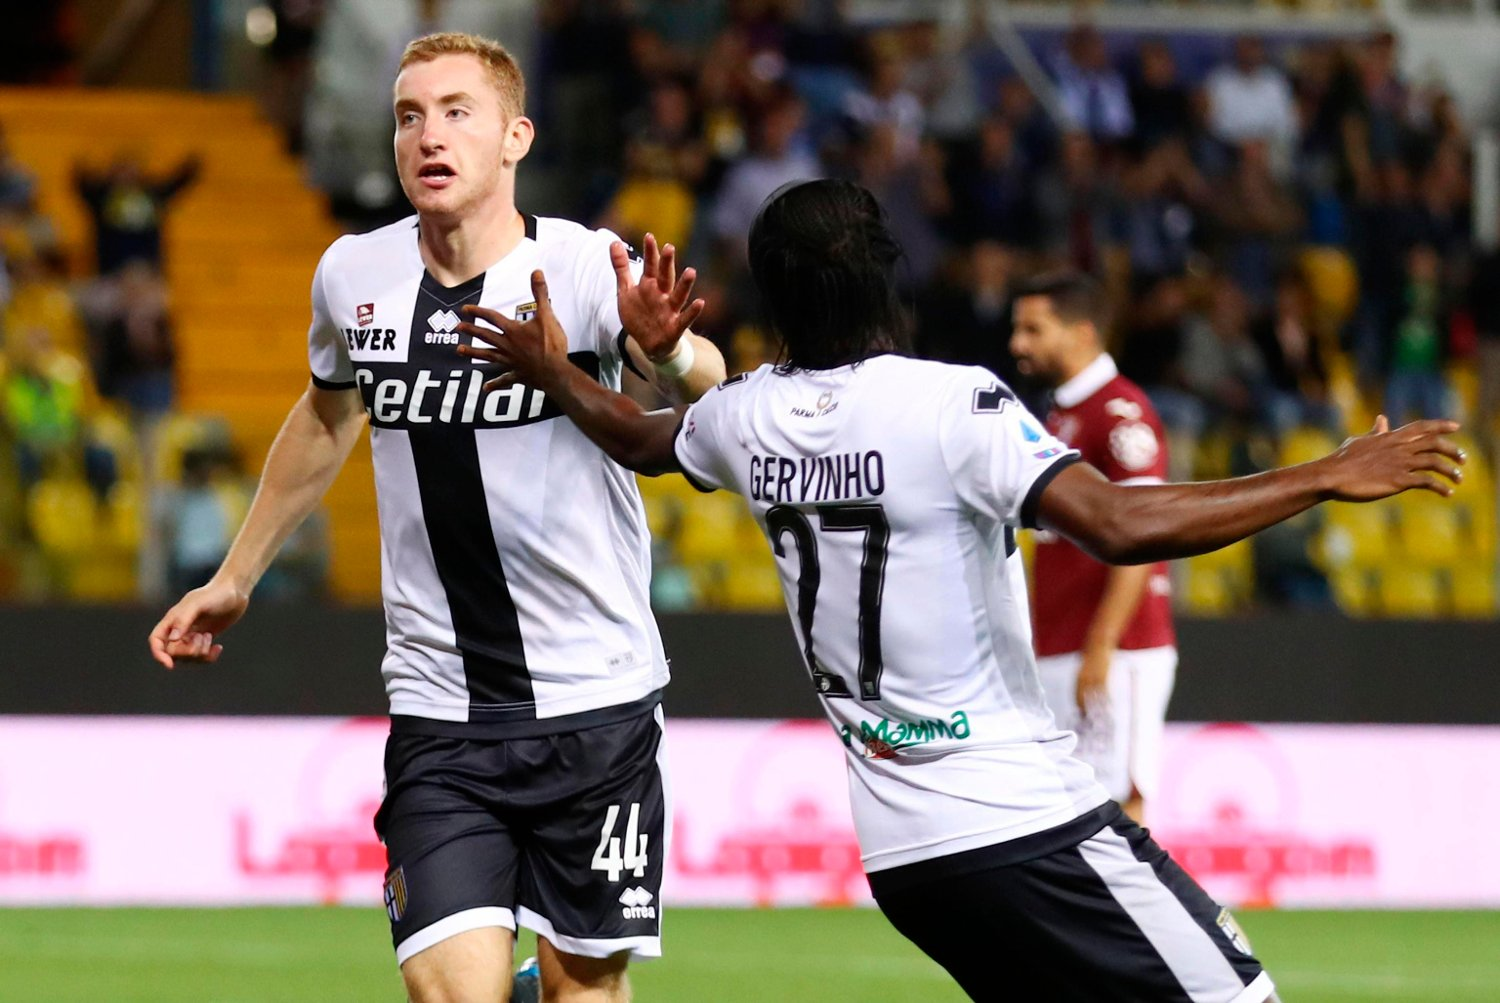 Parma's Dejan Kulusevski, left, jubilates with his teammate Gervinho after scoring a goal against Torino, during the Italian Serie A soccer match, Parma Calcio vs Torino FC at the Ennio Tardini stadium in Parma, Italy, Monday Sept. 30, 2019.